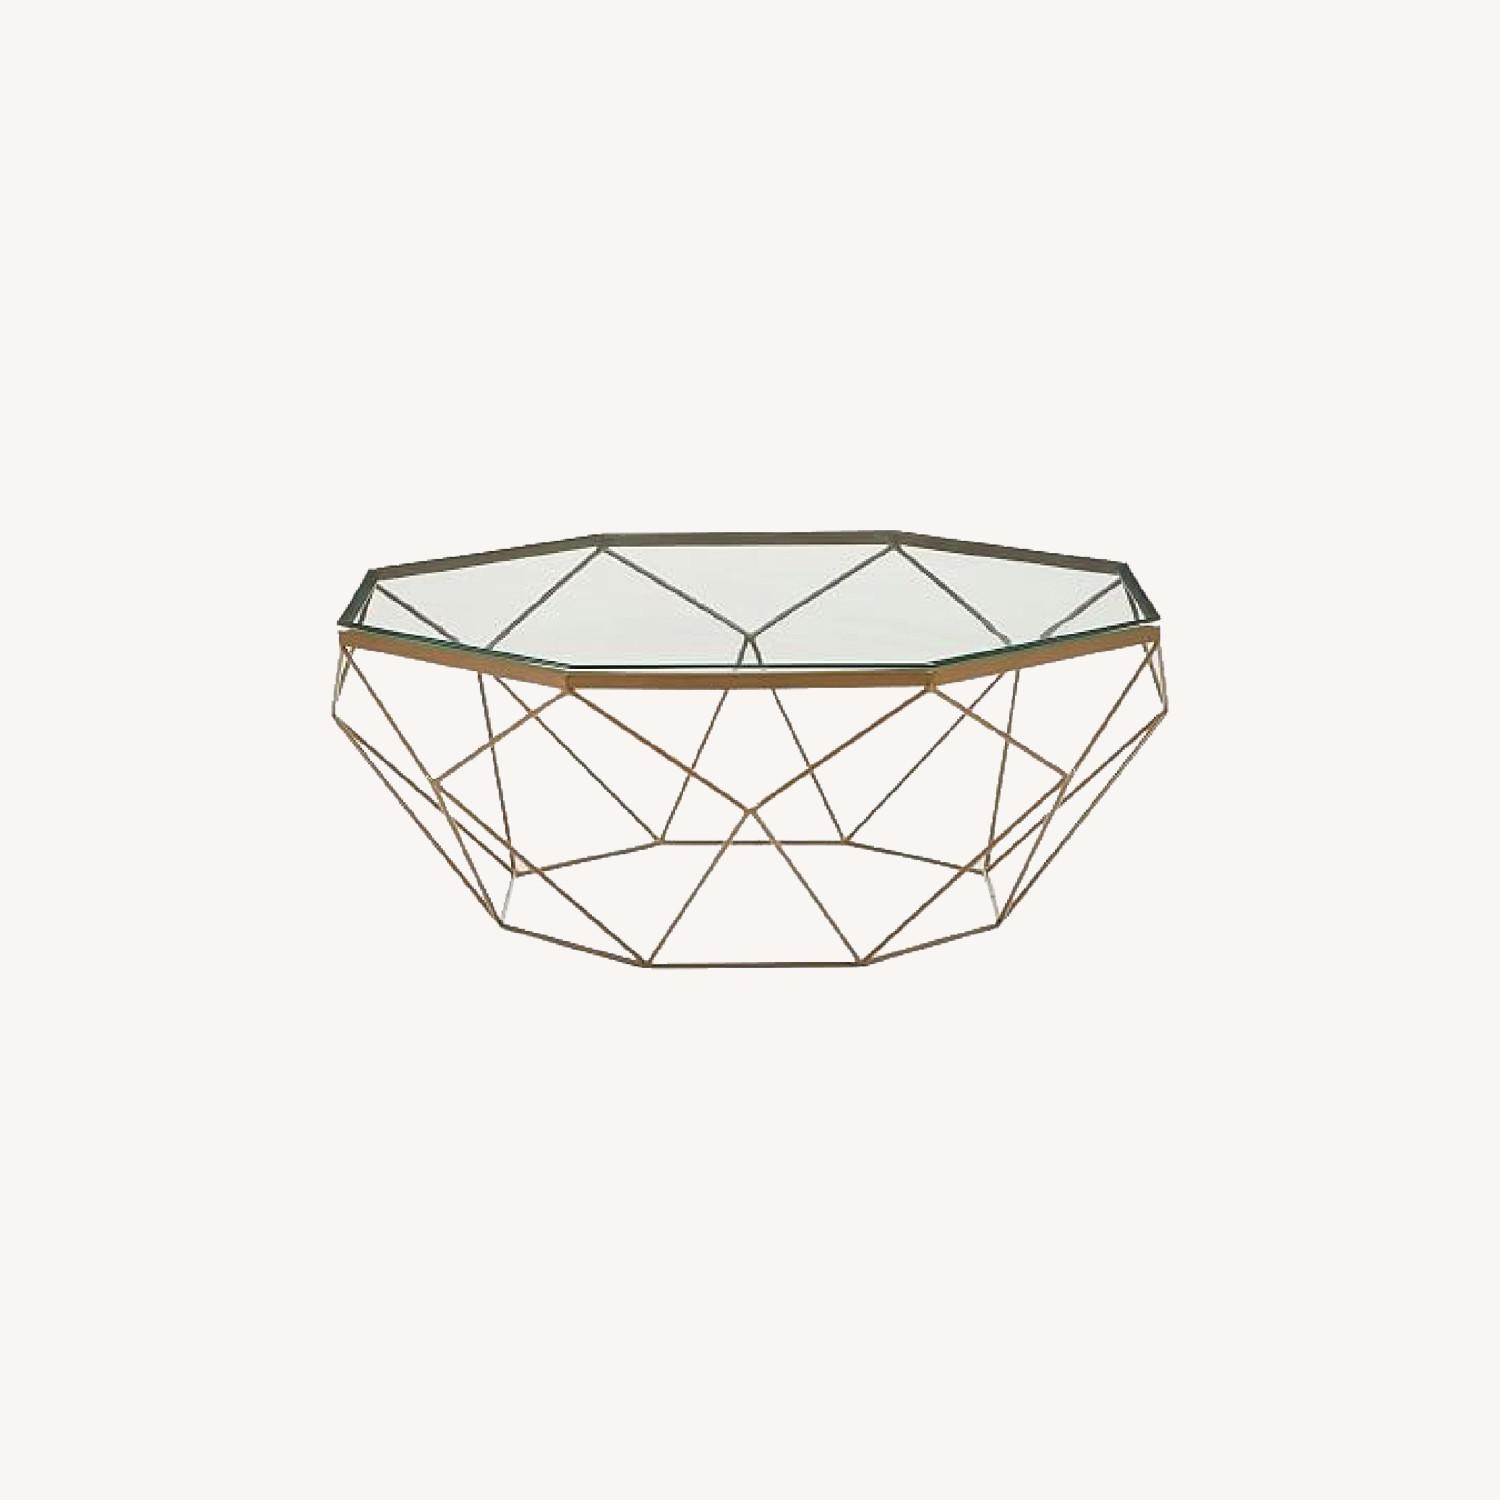 West Elm Geometric Glass Coffee Table - image-0